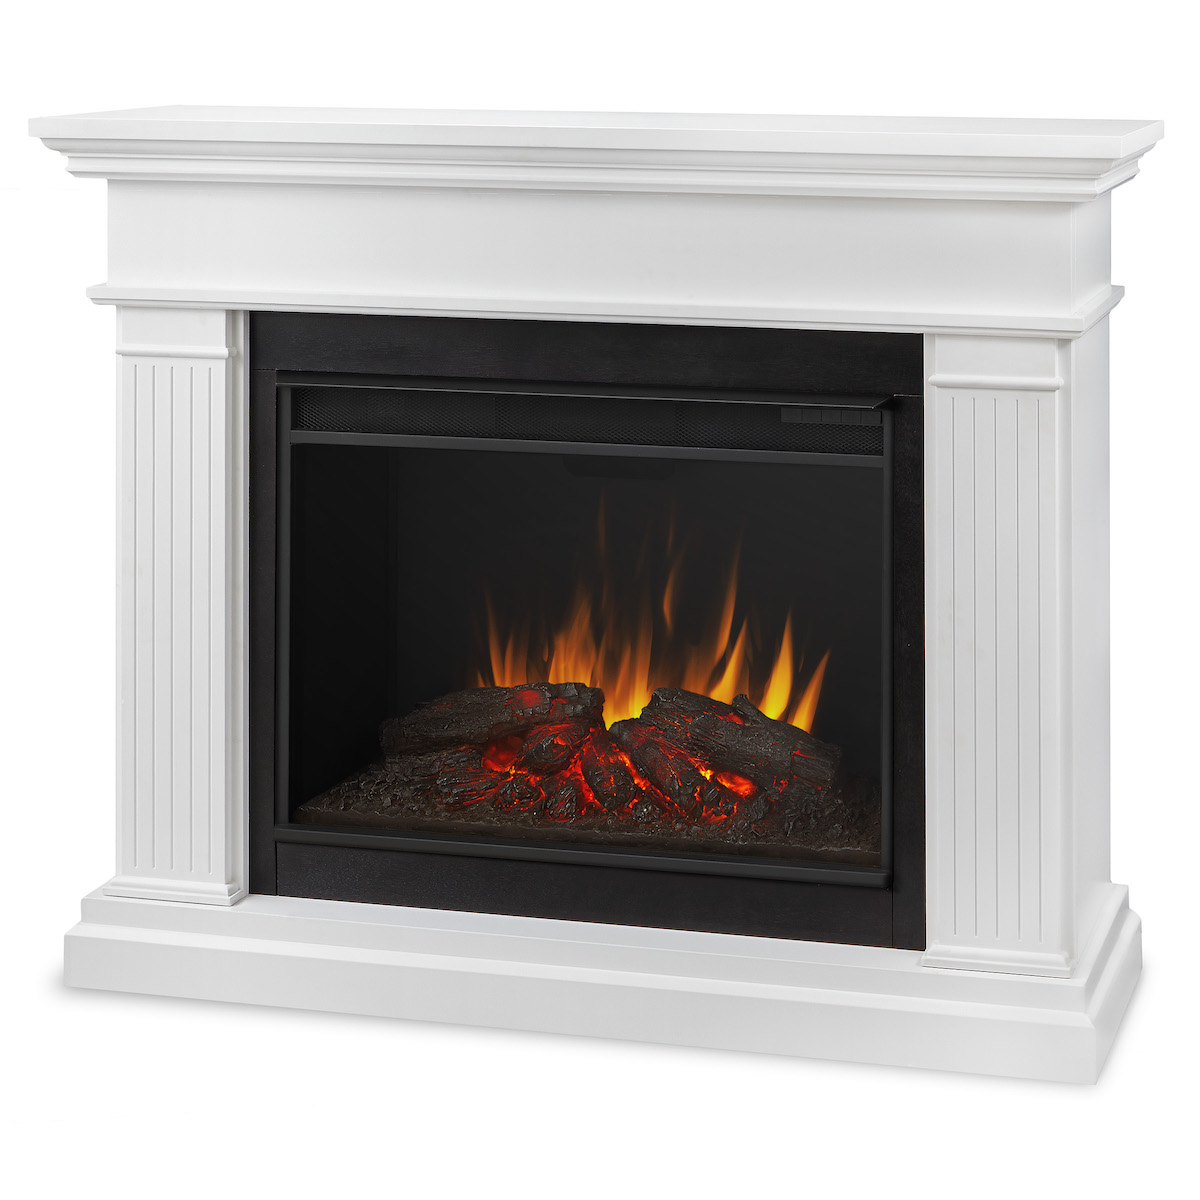 Real flame kennedy grand electric fireplace in white for Electric fireplace pics